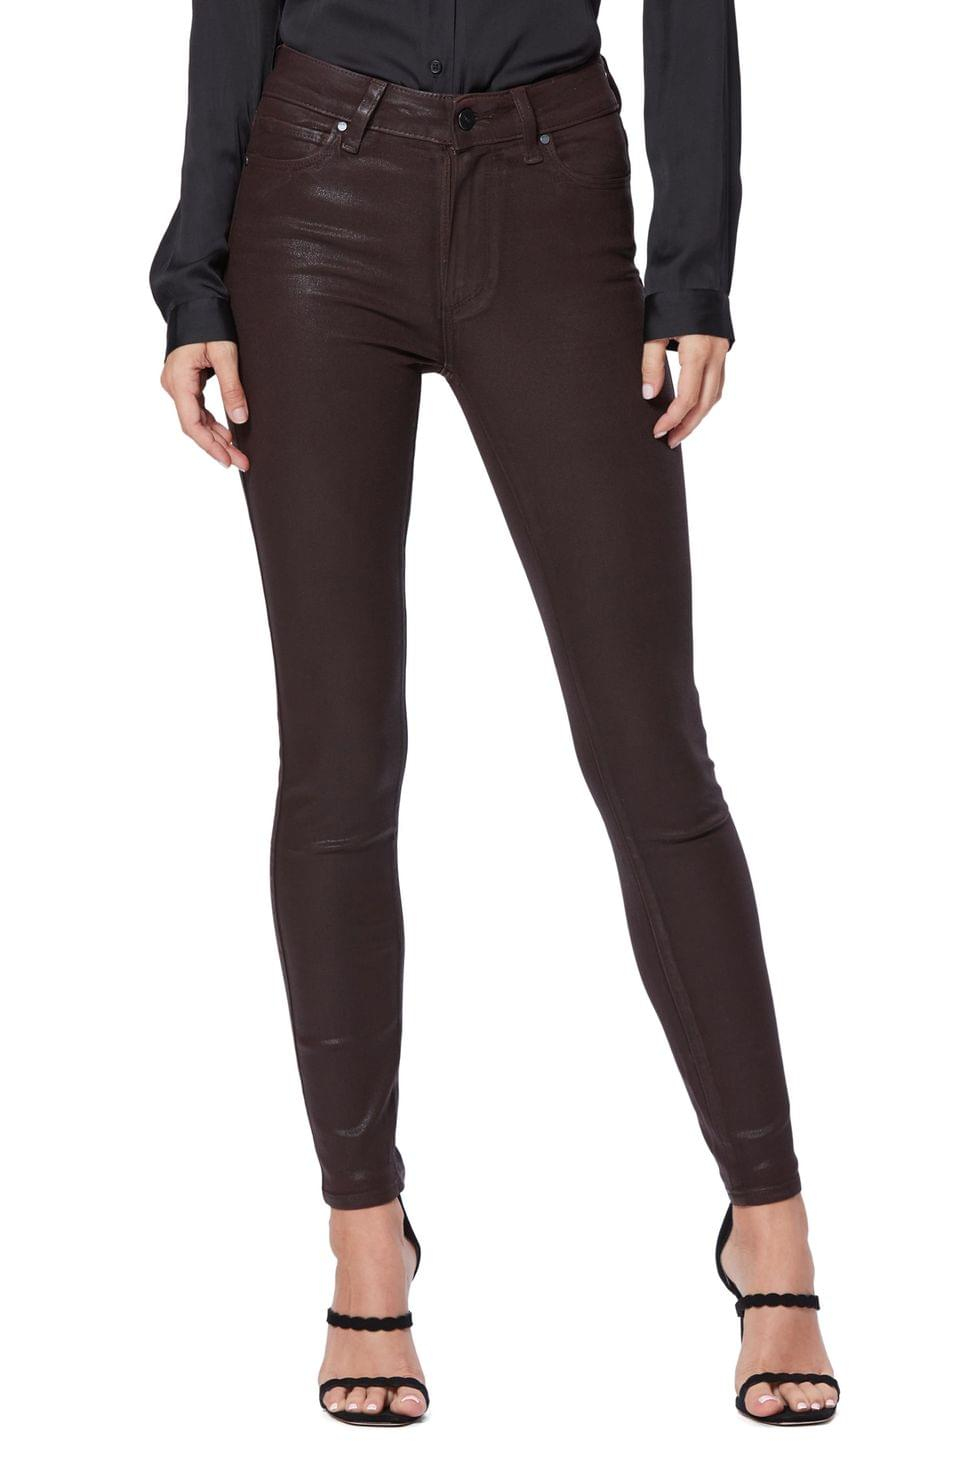 Women's PAIGE Transcend - Hoxton Coated High Waist Skinny Jeans (Chicory Coffee Luxe Coating)